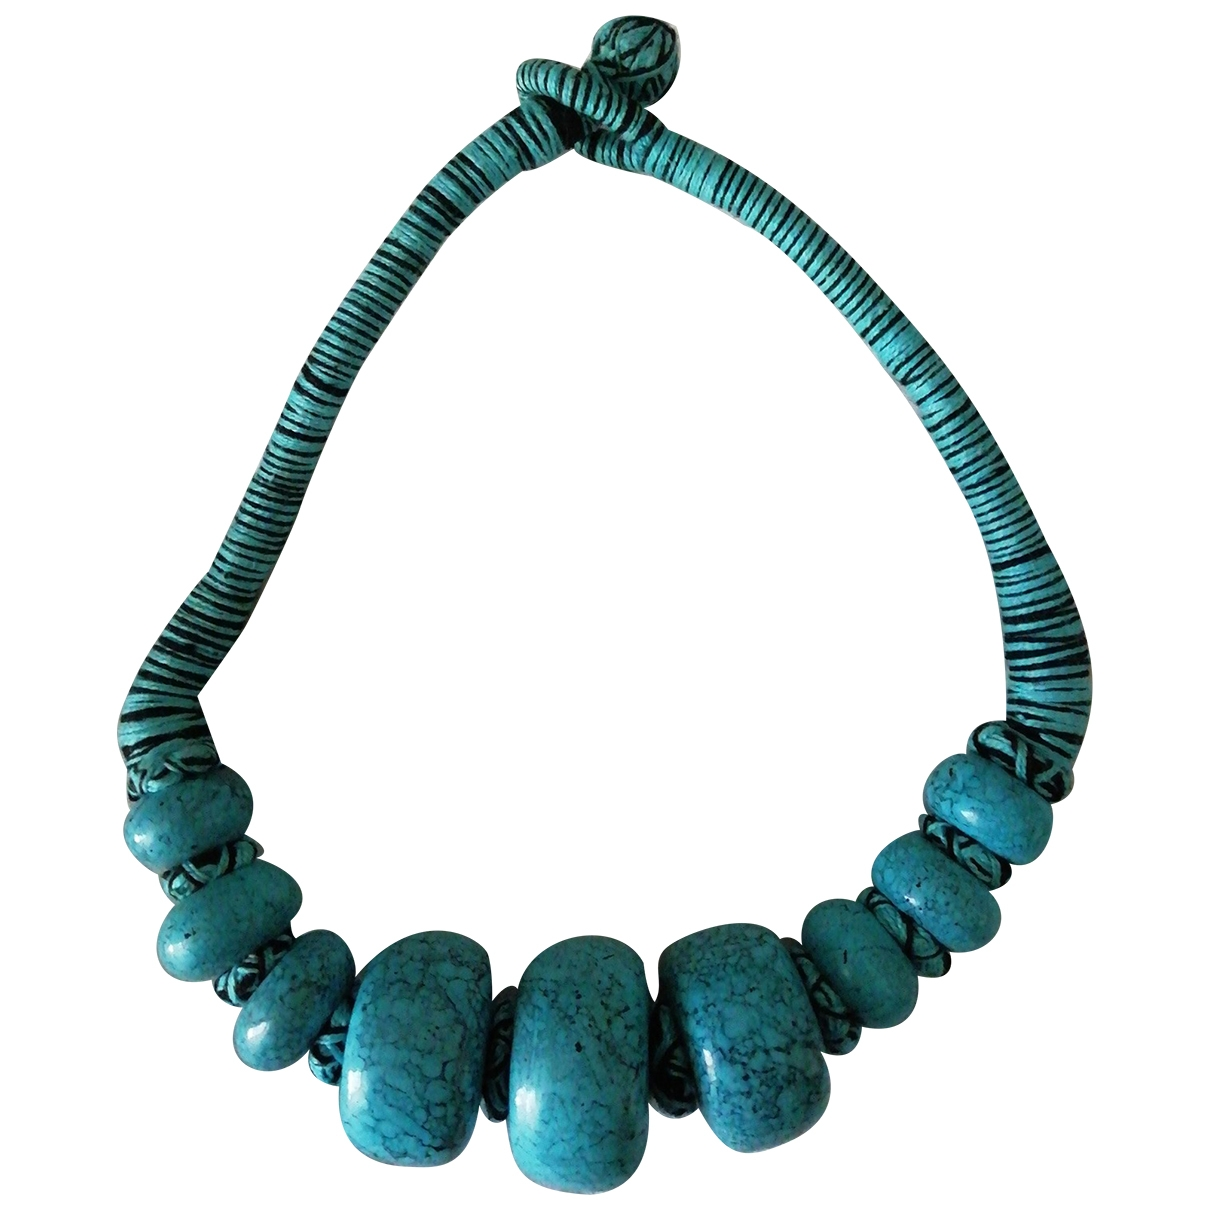 Non Signe / Unsigned Turquoises Kette in  Tuerkis Metall